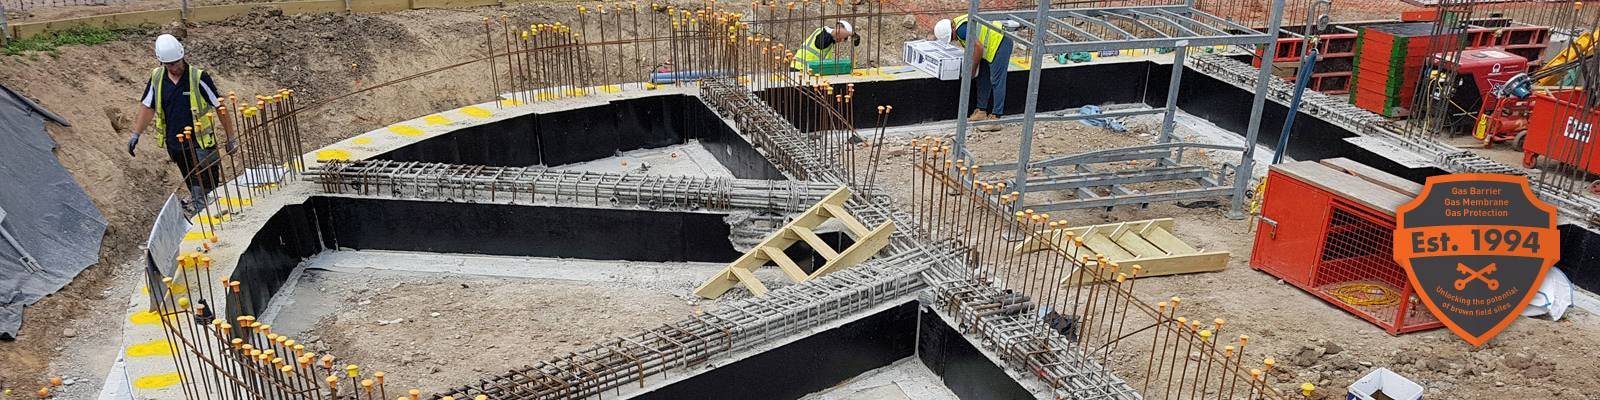 gas-membrane-foundations-with-workers.jpg